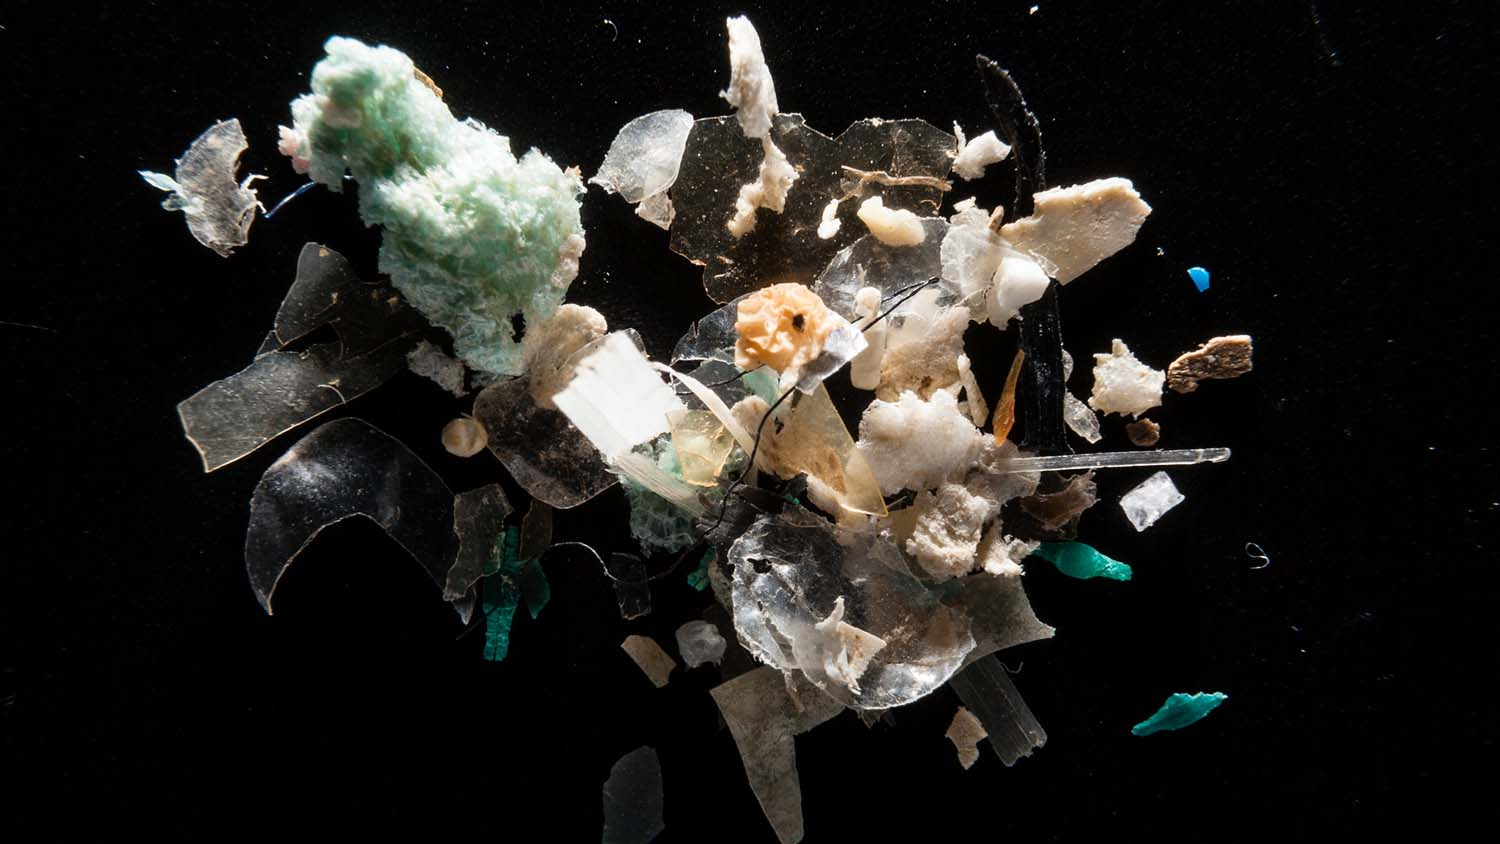 A clump of microplastic ocean waste